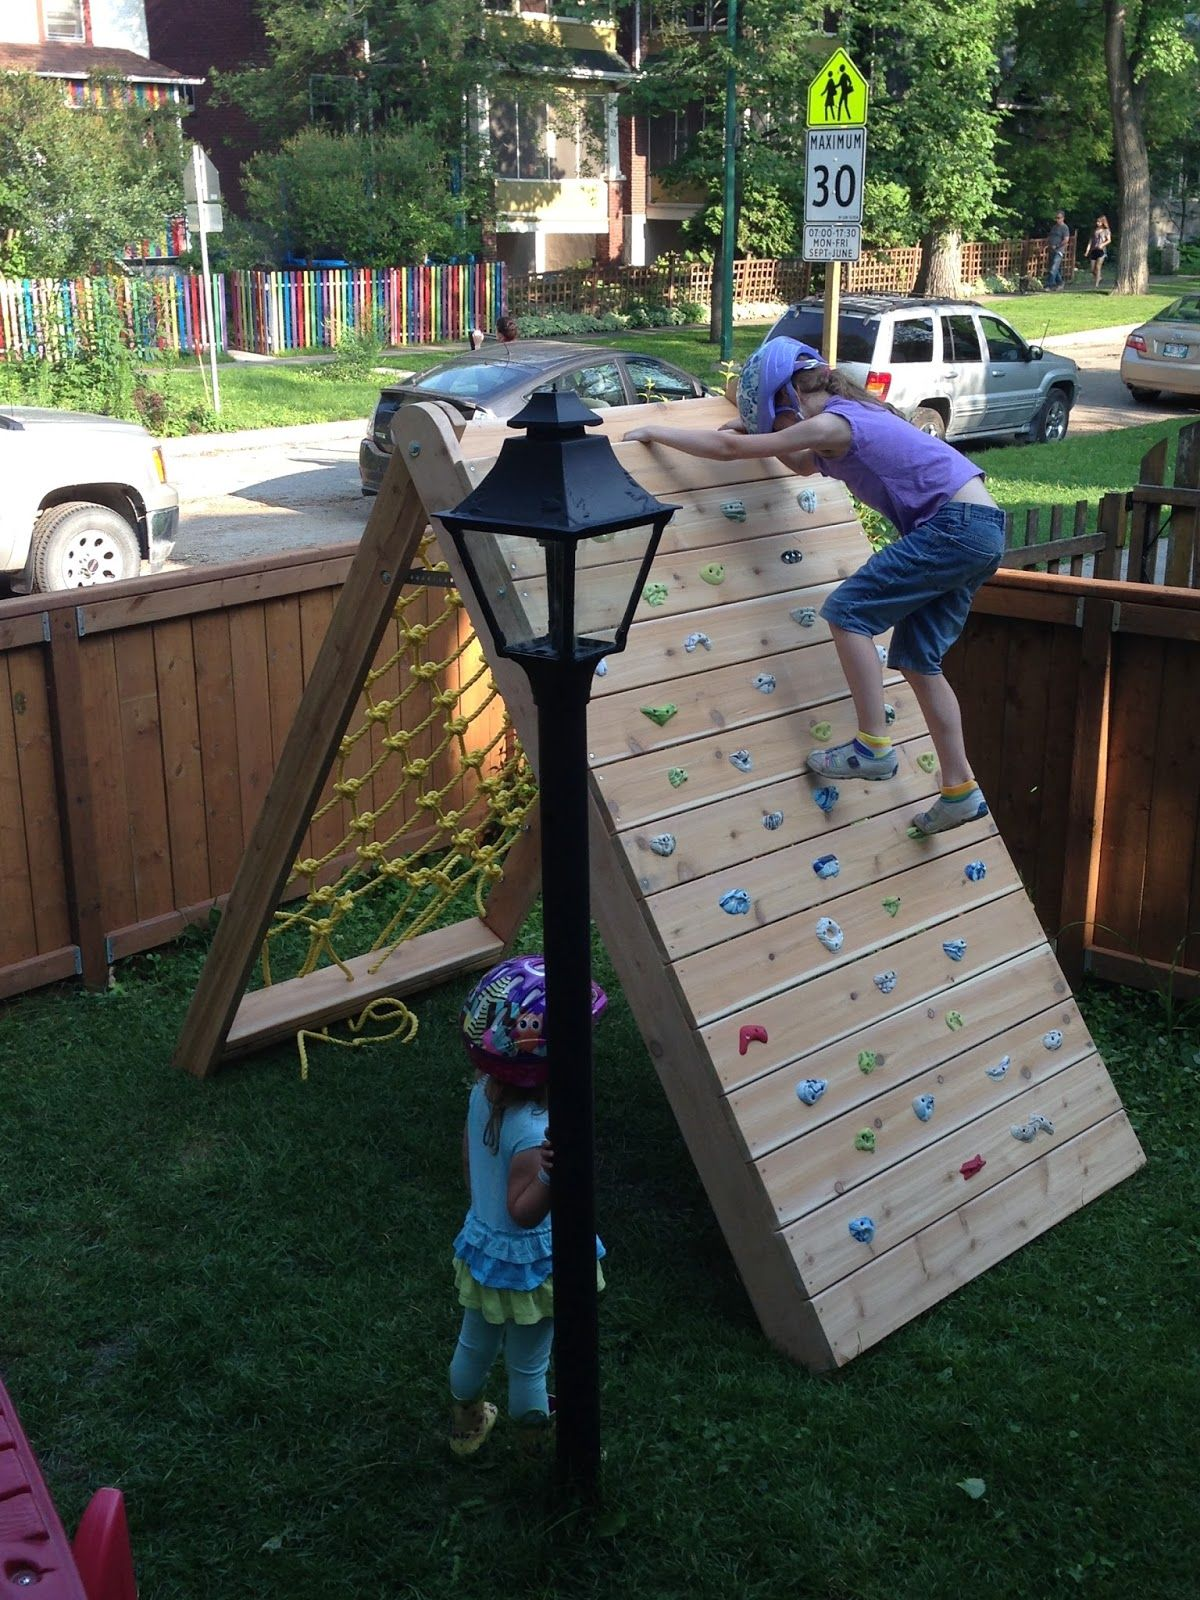 my wife was looking at play structures to give our three kids